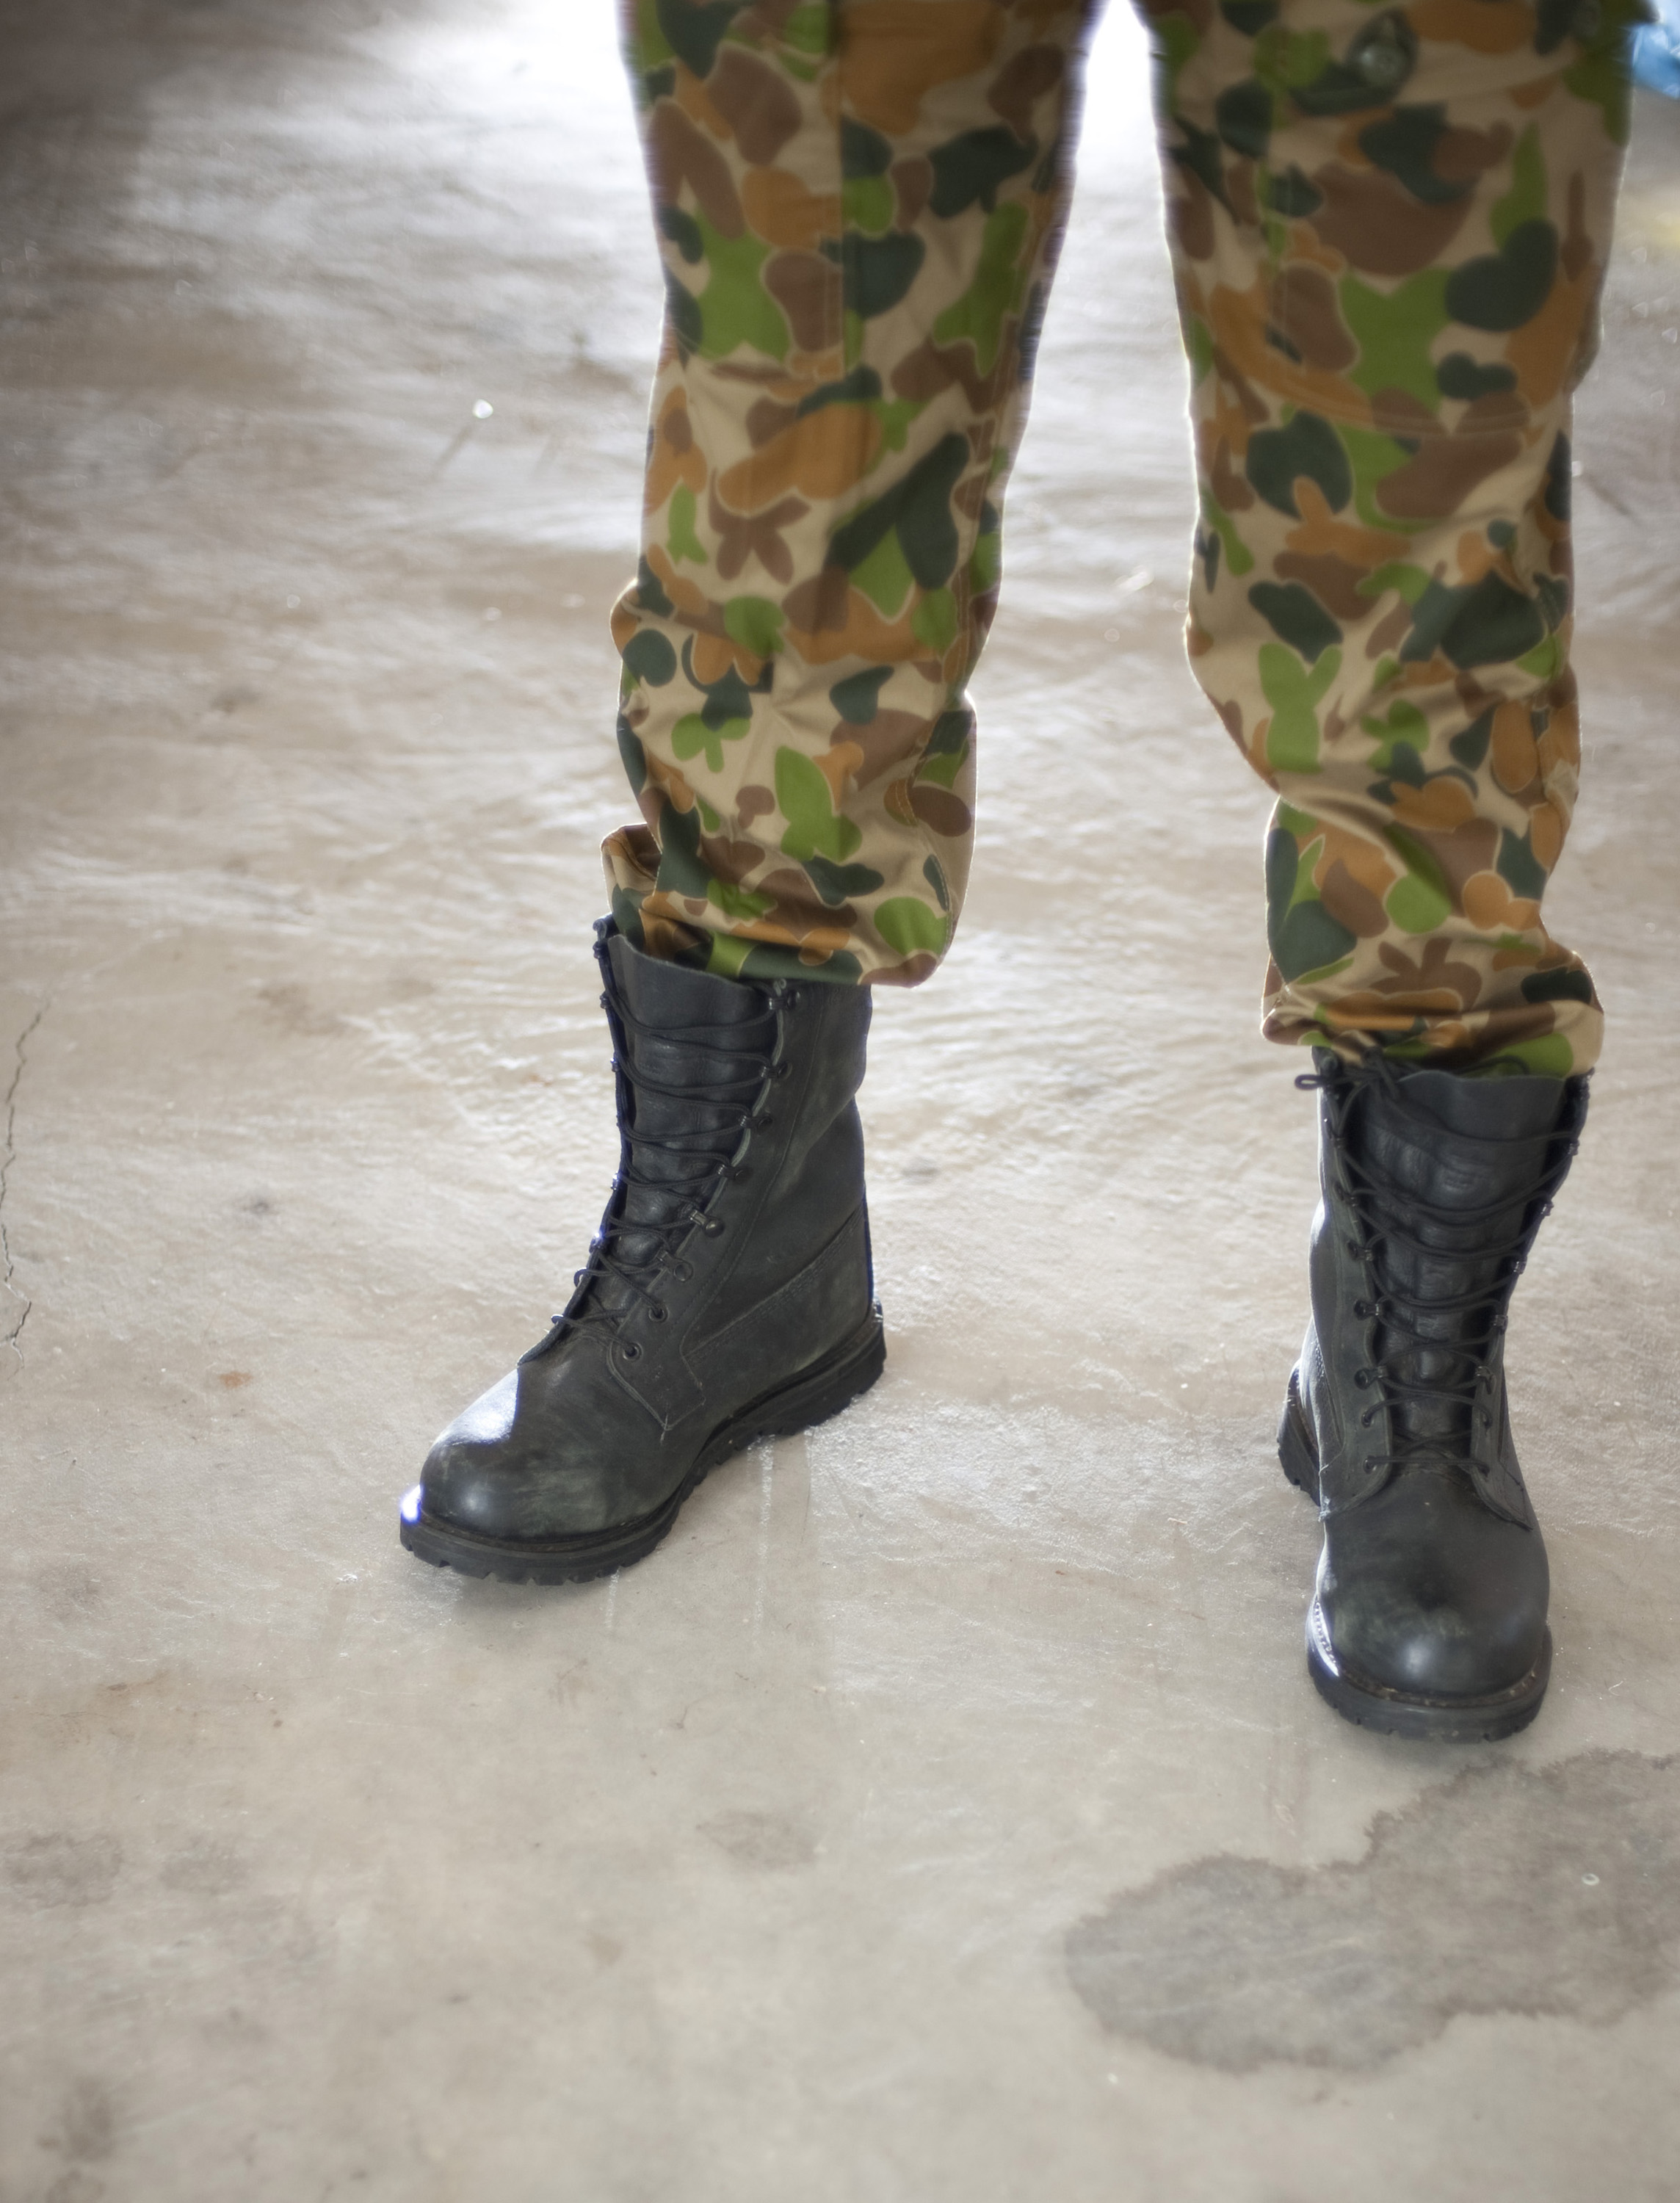 Combat Boots And Camo 2751 Stockarch Free Stock Photos